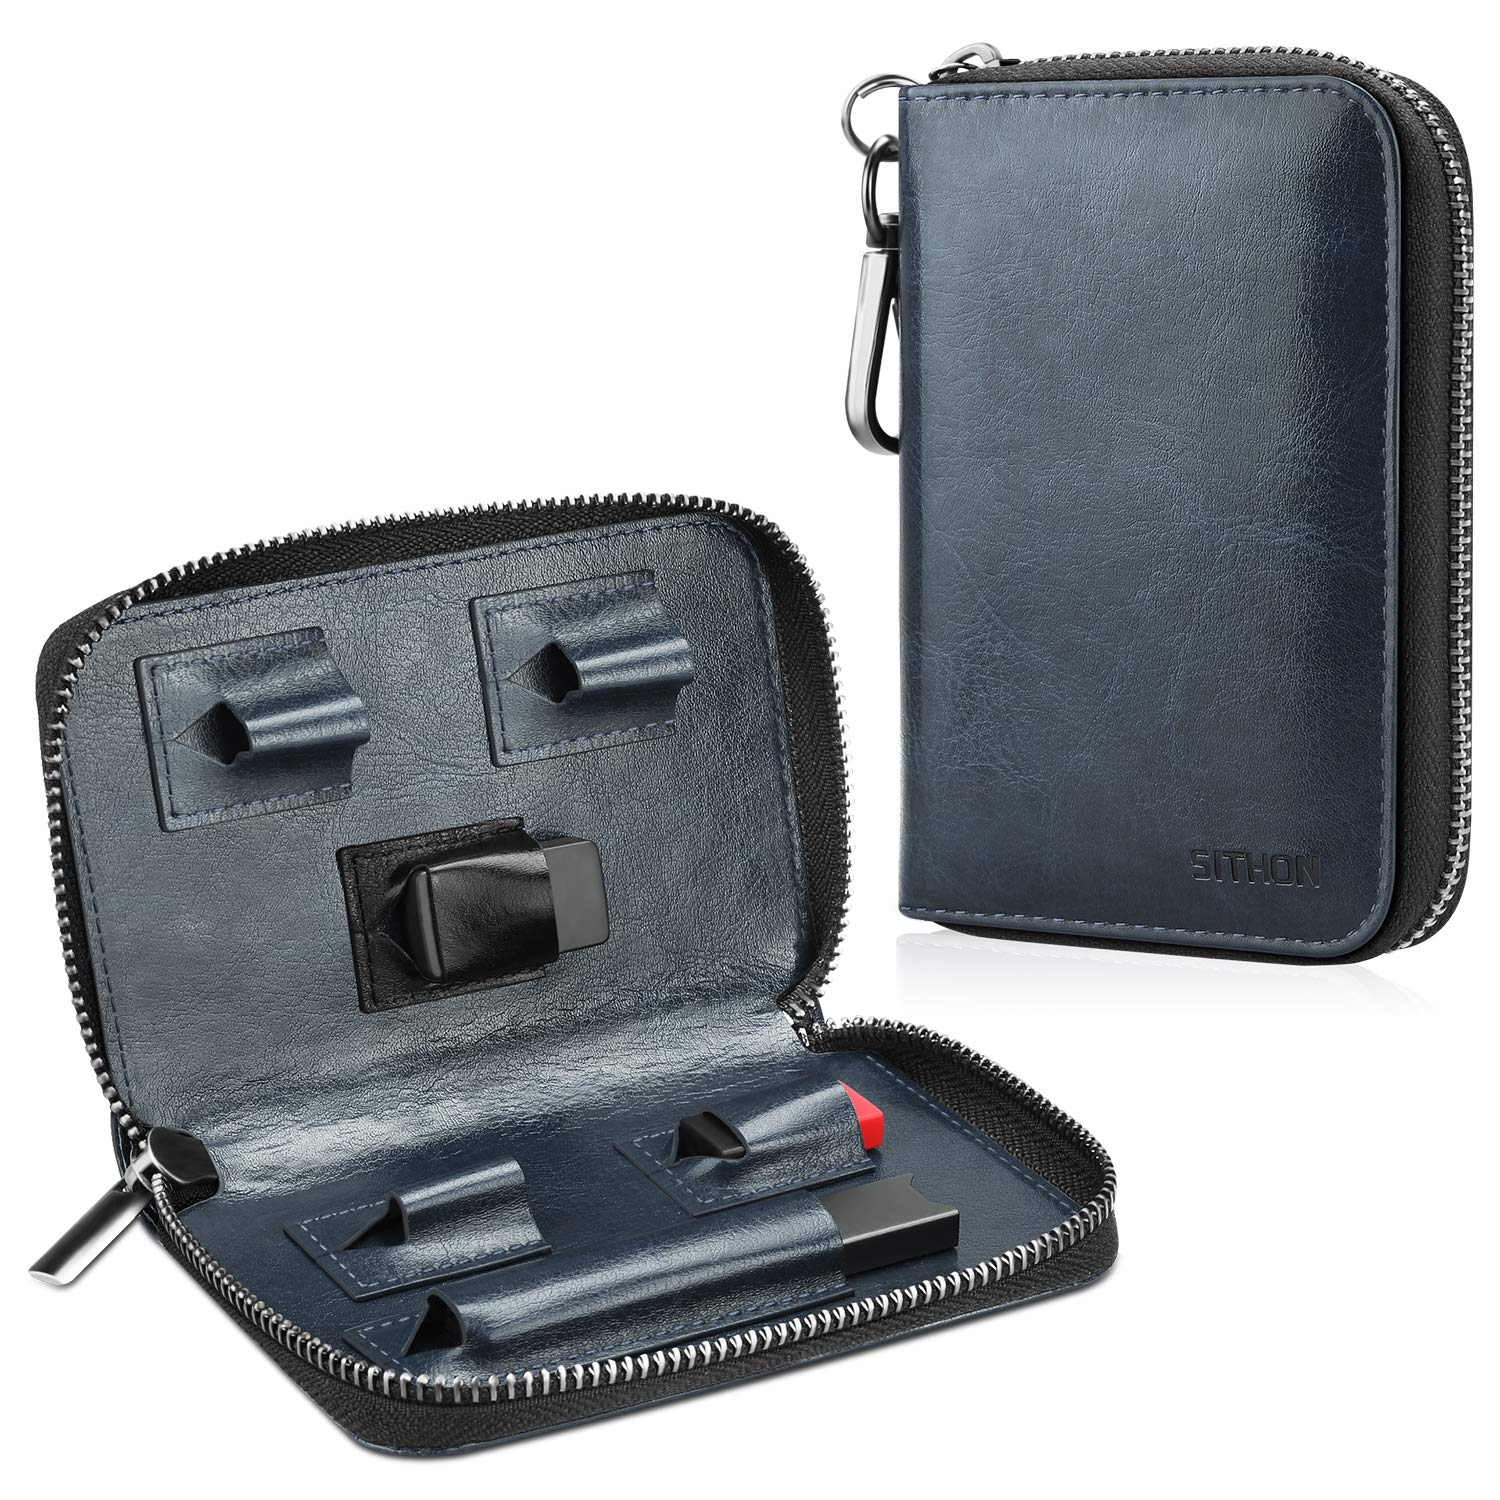 SITHON Vape Carrying Case for JUUL - PU Leather